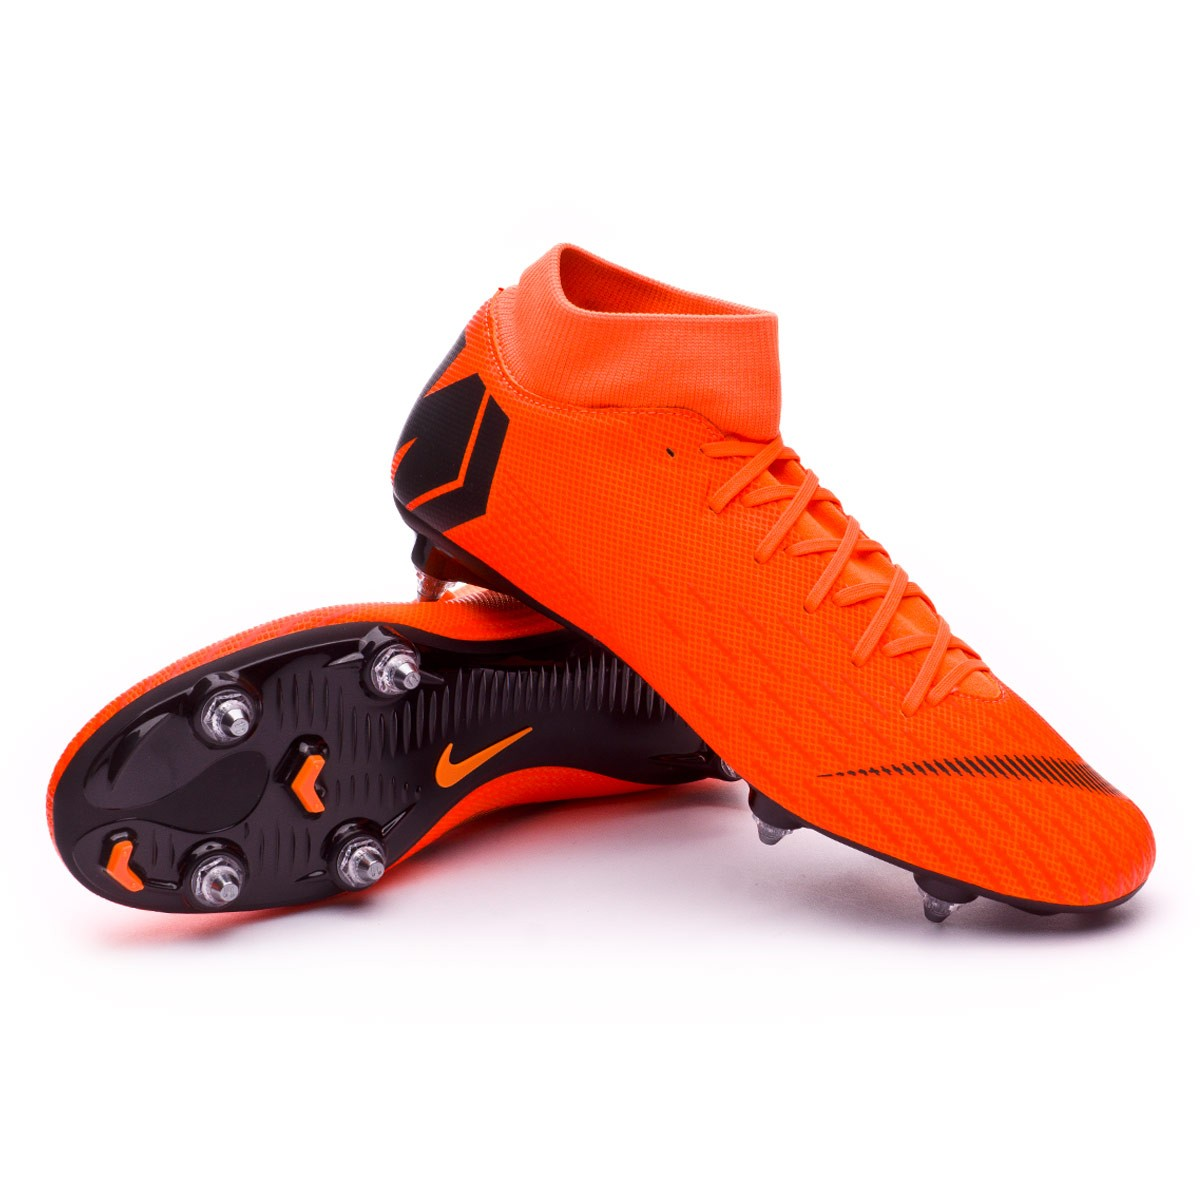 pretty nice d93c3 5ae98 Chaussure de foot Nike Mercurial Superfly VI Academy SG-Pro Total  orange-Black-Volt - Boutique de football Fútbol Emotion